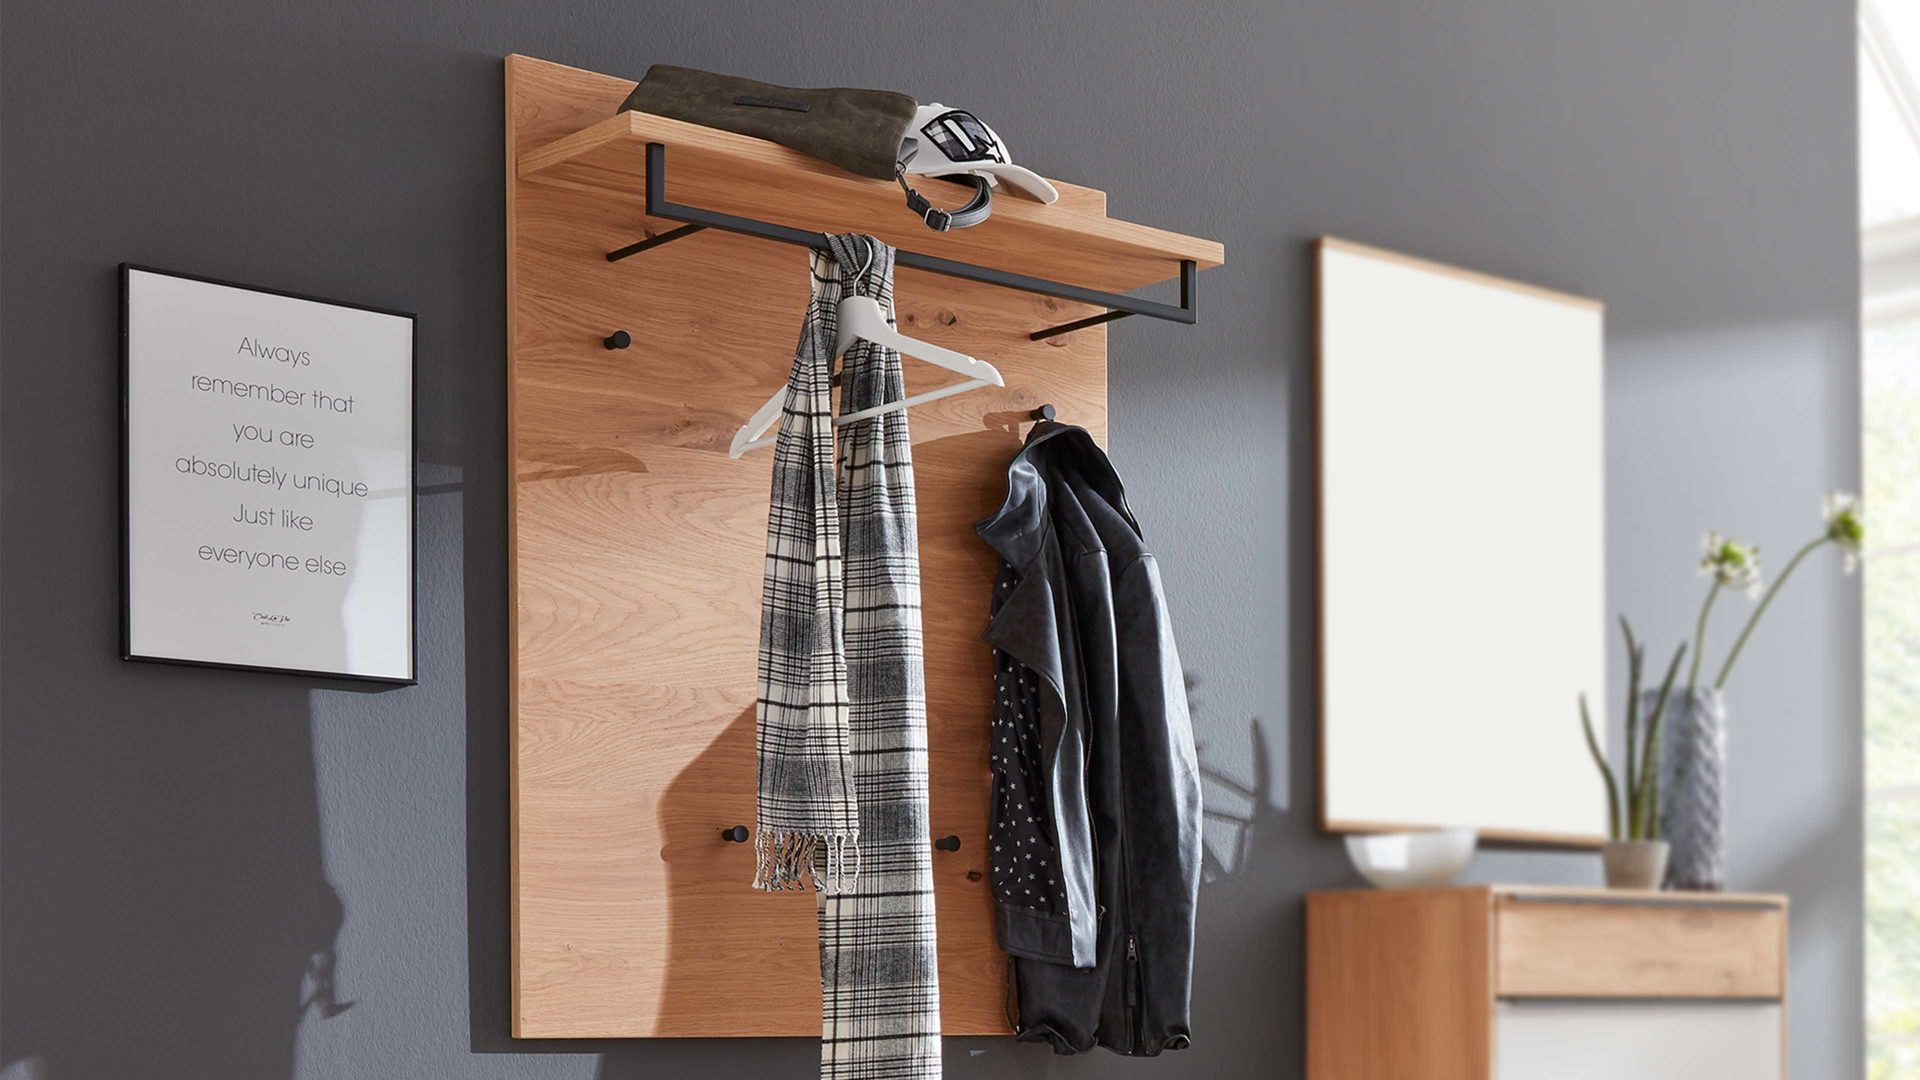 Wandgarderobe Interliving aus Holz in Holzfarben Interliving Garderoben Serie 6005 – Wandgarderobe 821 Balkeneiche – ca. 80 x 109 cm